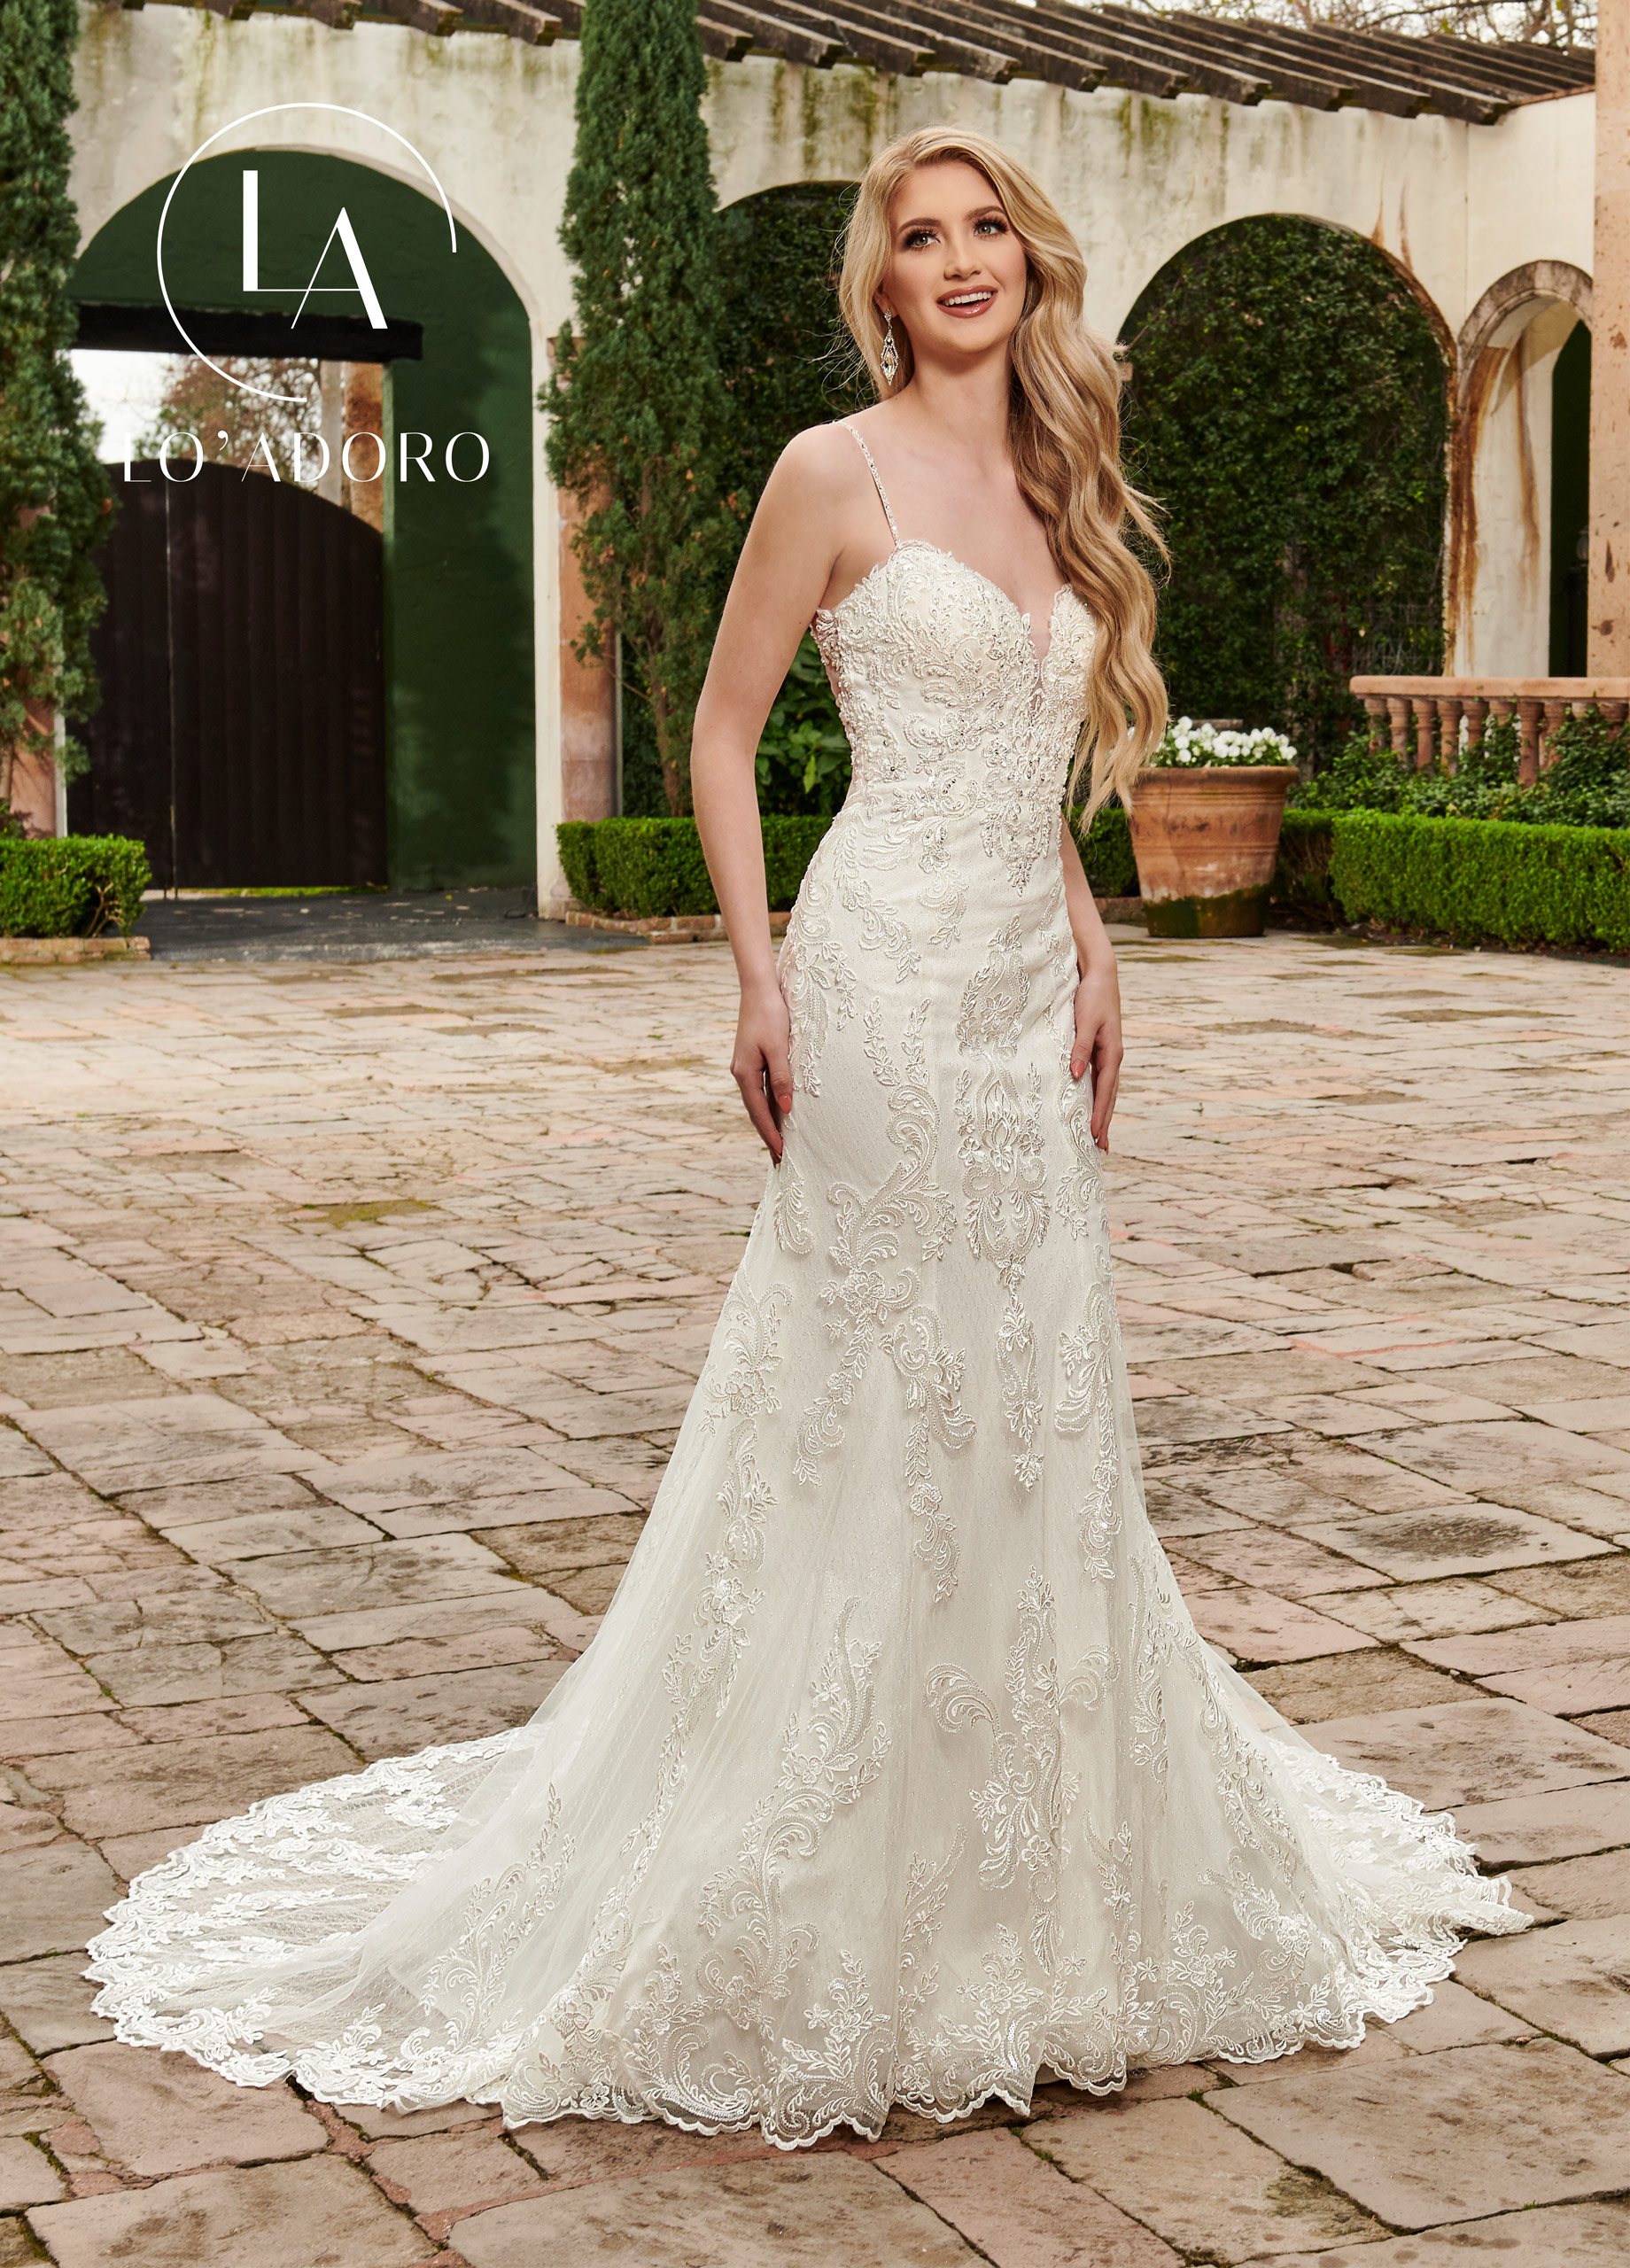 Sweetheart Fit & Flare Lo' Adoro Bridal in Ivory Color